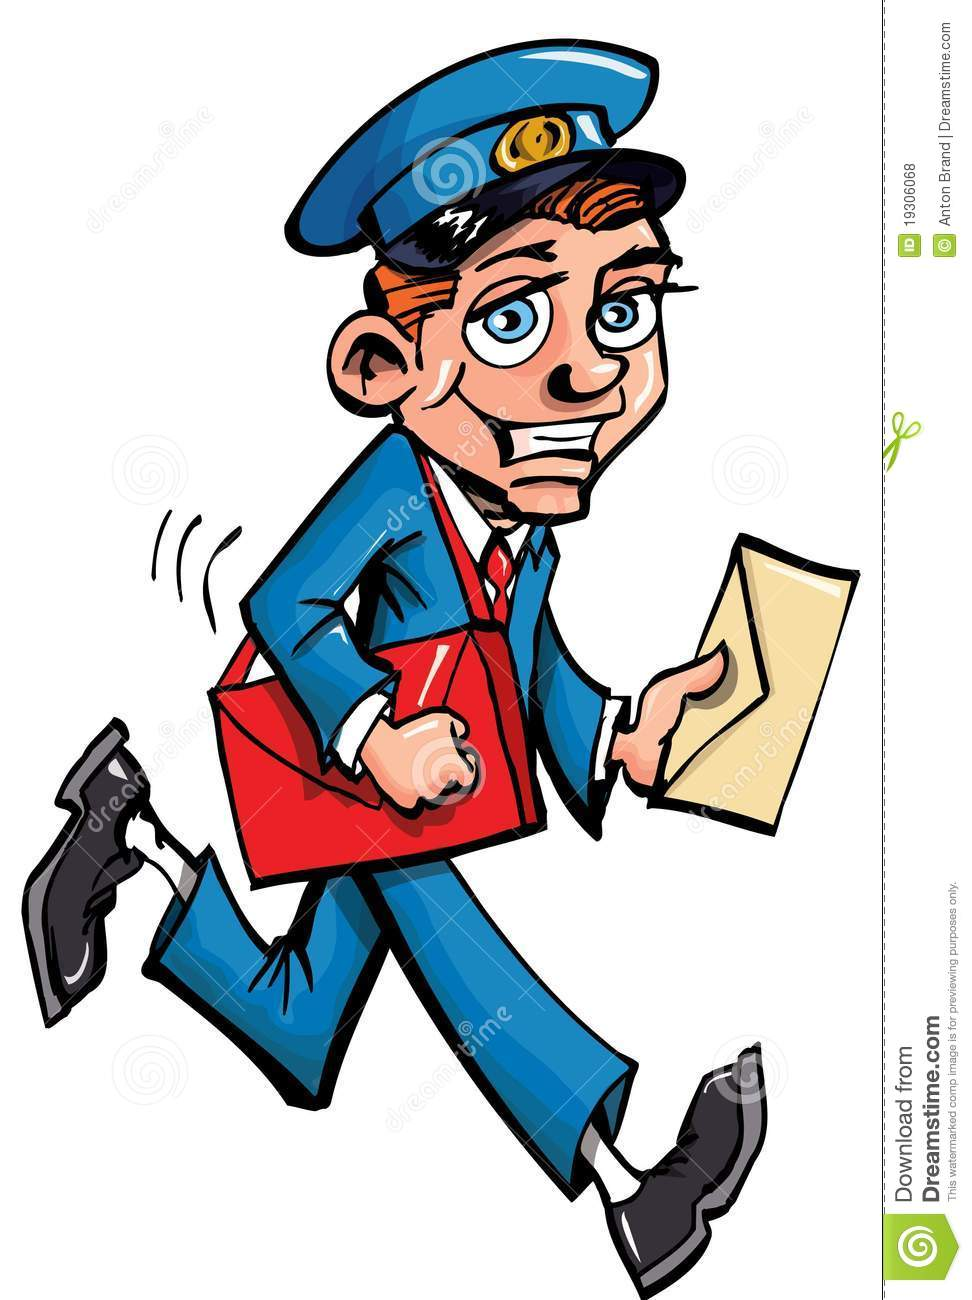 Cartoon Mailman Delivering Mail Royalty Free Stock Photos - Image ...